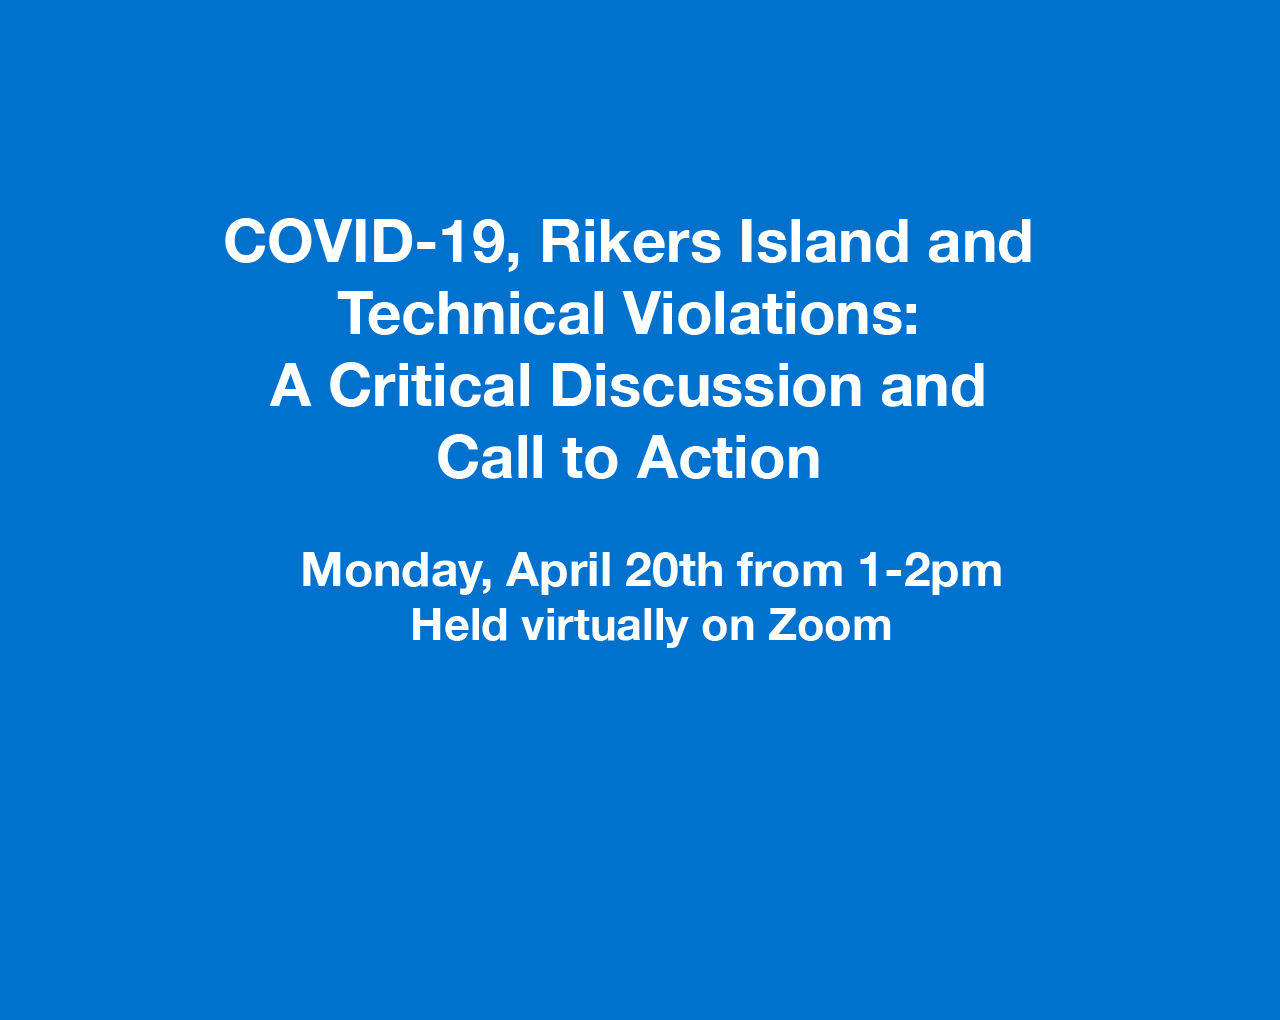 COVID-19, Rikers Island and Technical Violations: A Critical Discussion and Call to Action